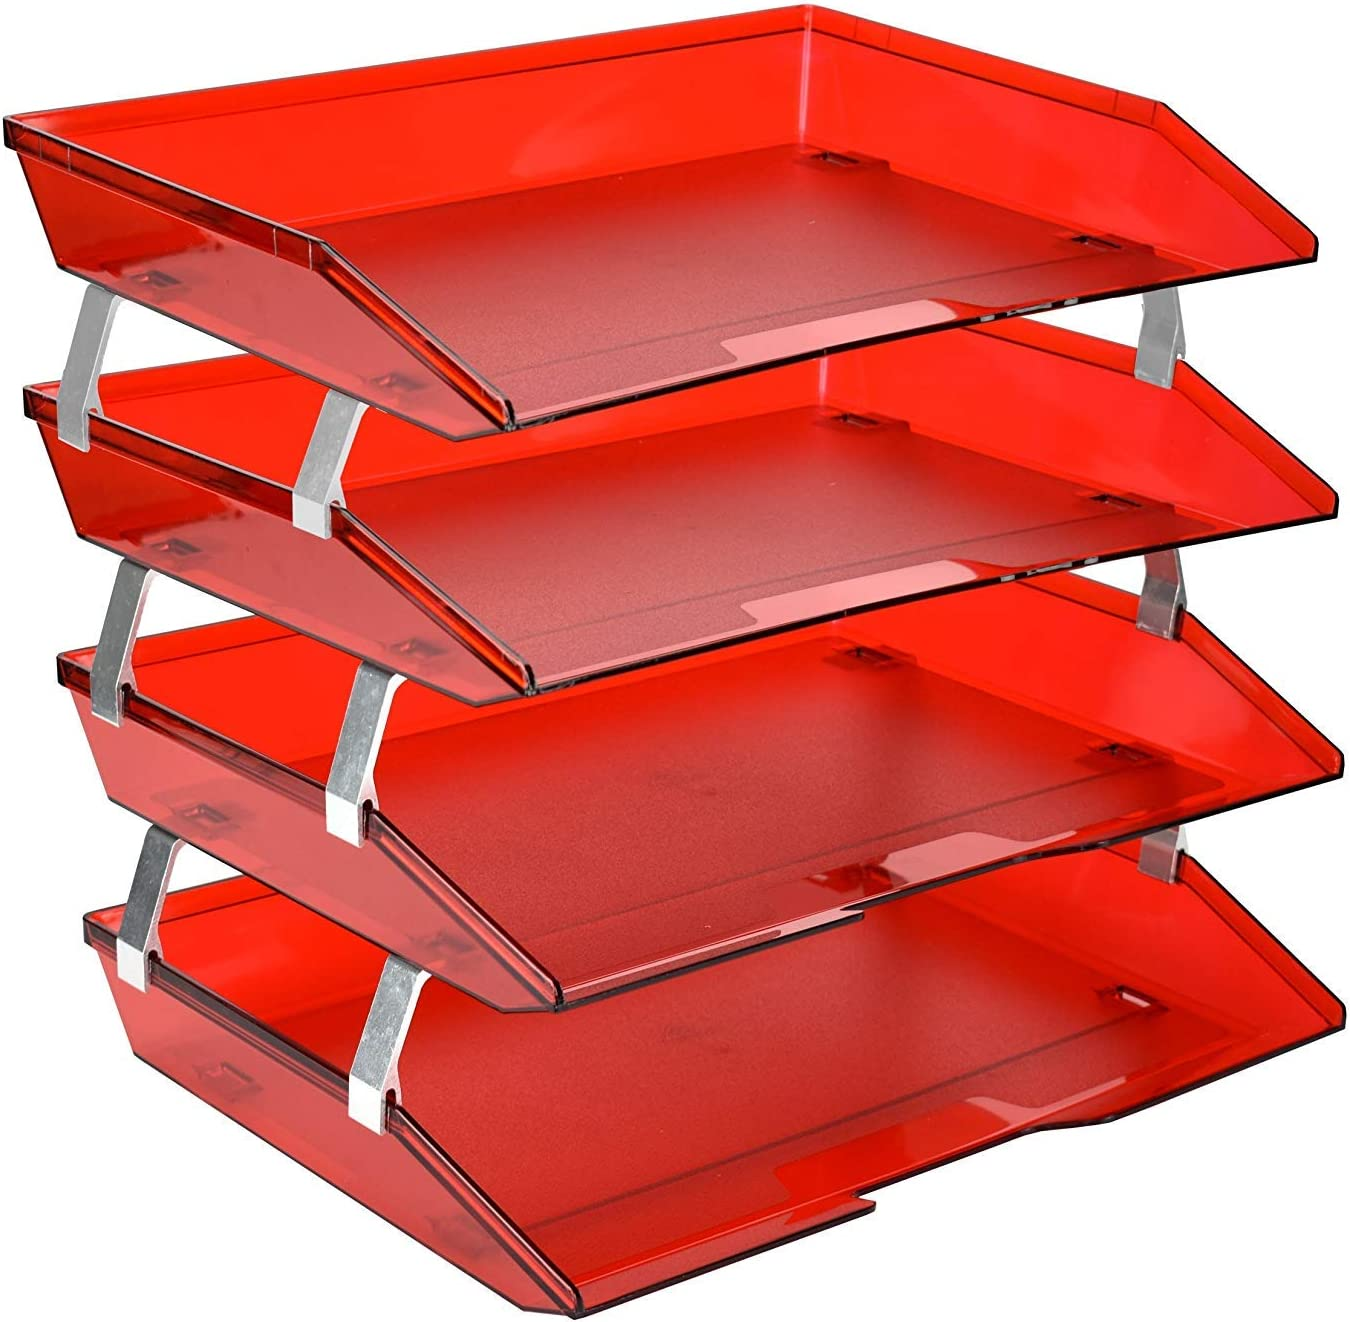 Acrimet Facility 4 Tier Letter Tray Side Load Plastic Desktop File Organizer (Clear Red Color)